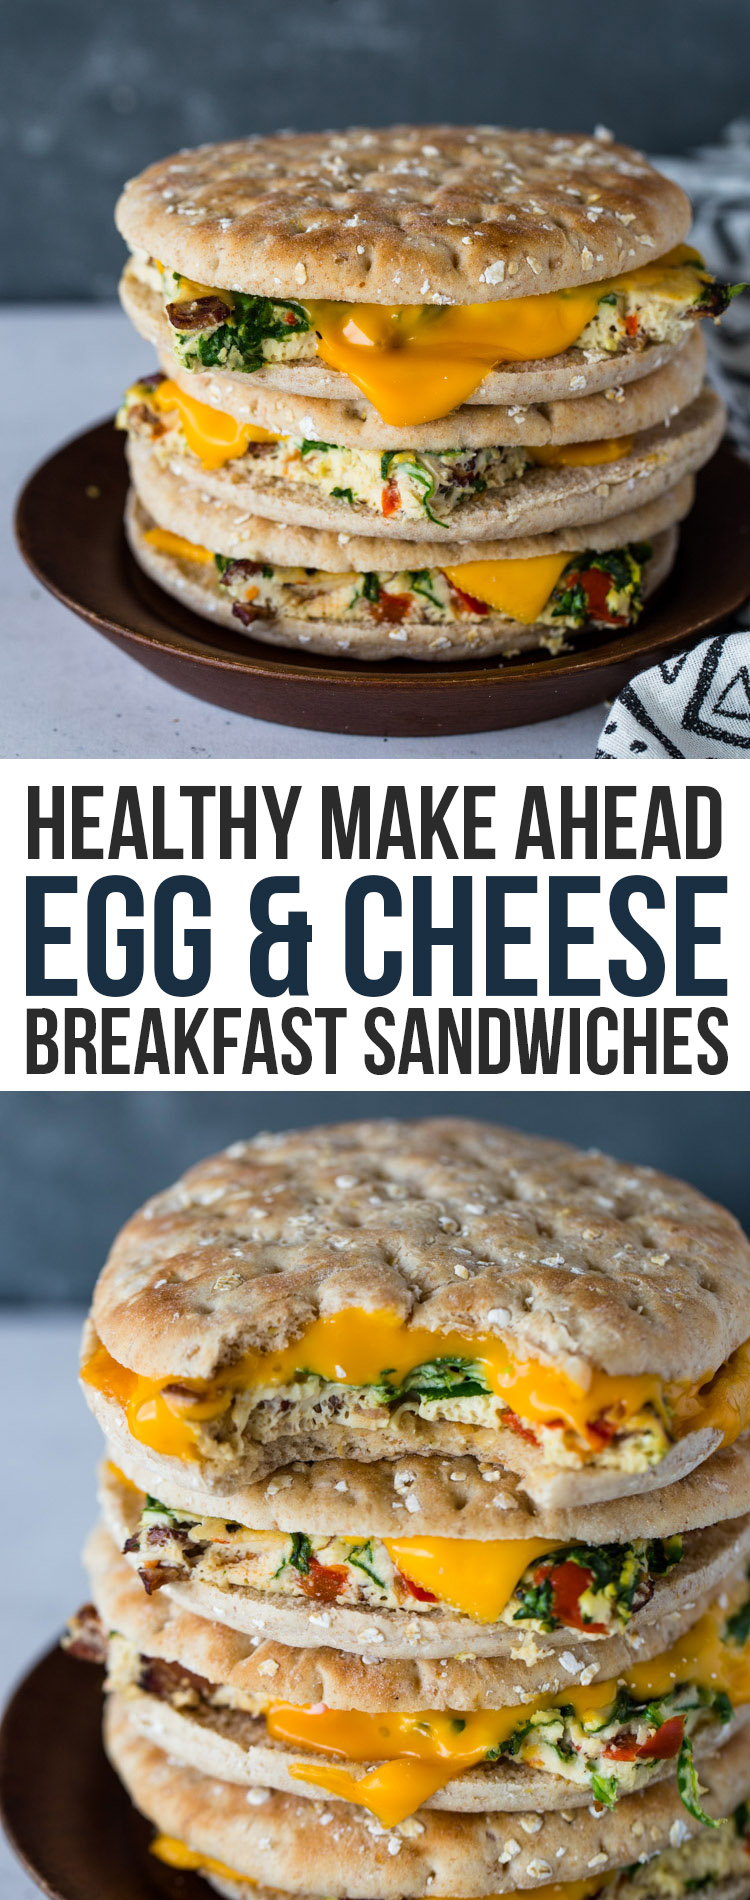 Healthy Make Ahead Egg & Cheese Breakfast Sandwiches (with Keto Option)